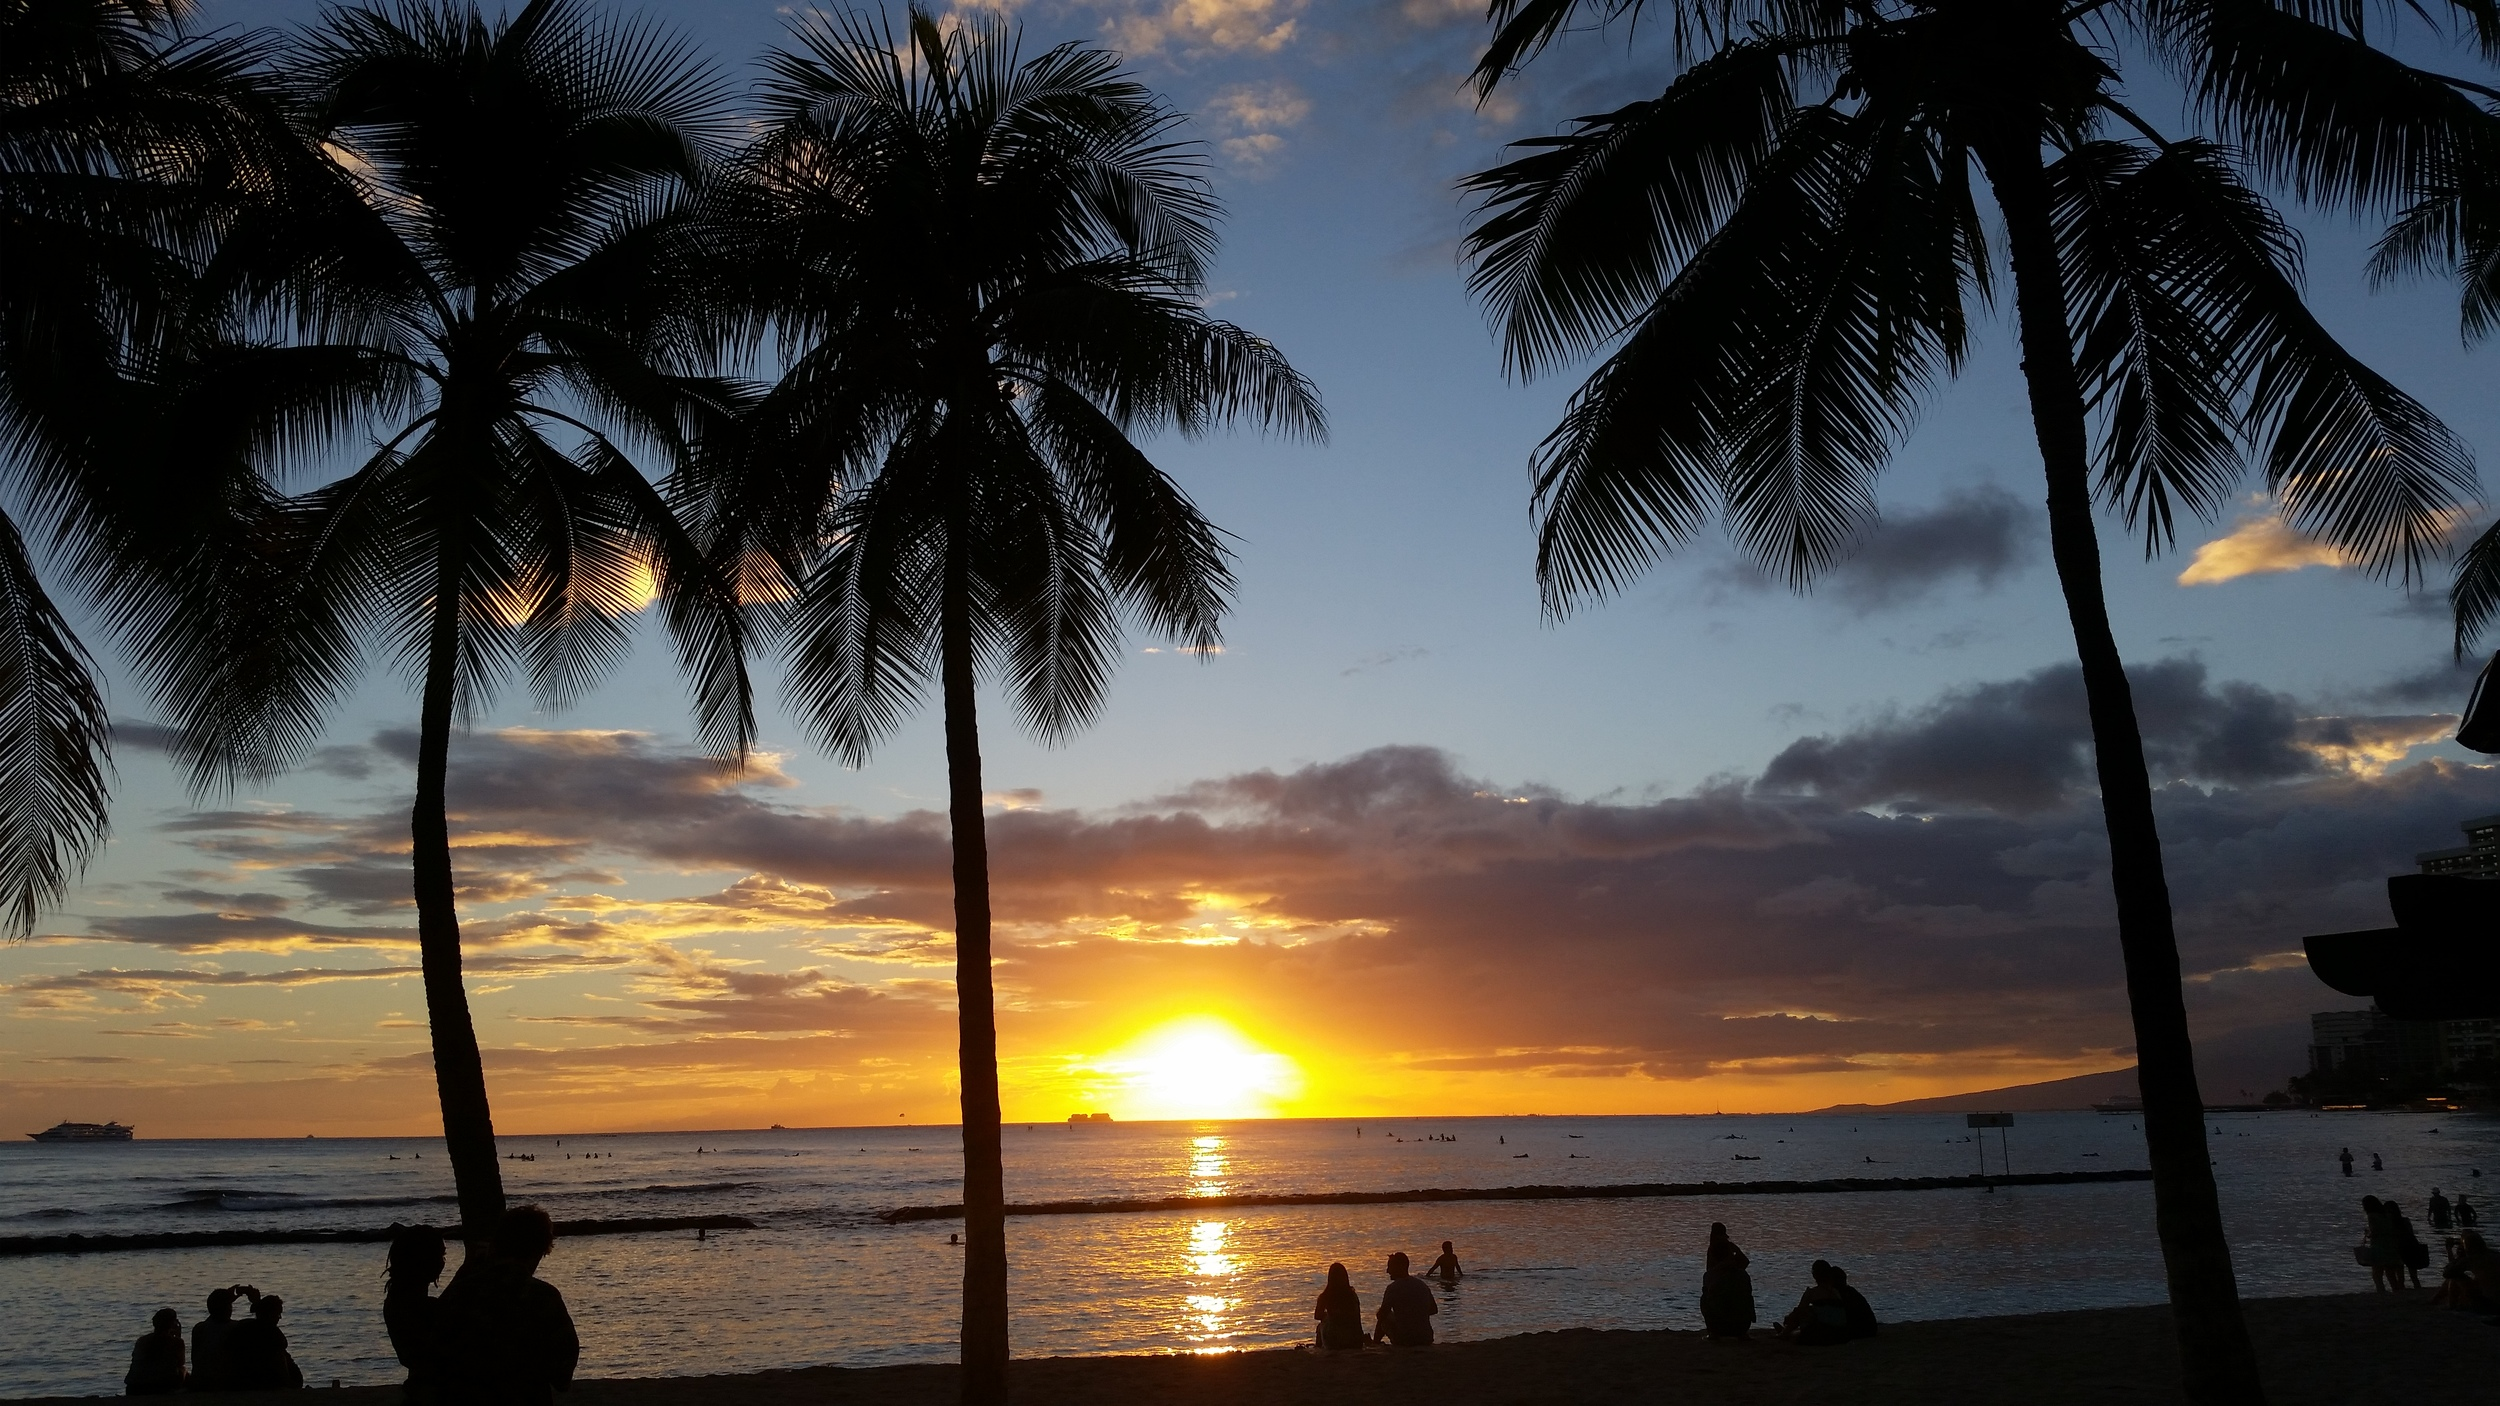 """Honolulu sunset over the Pacific ocean:  We need """"Impact Evaluation"""" now before it is too costly, too late to transform lives world-wide!"""